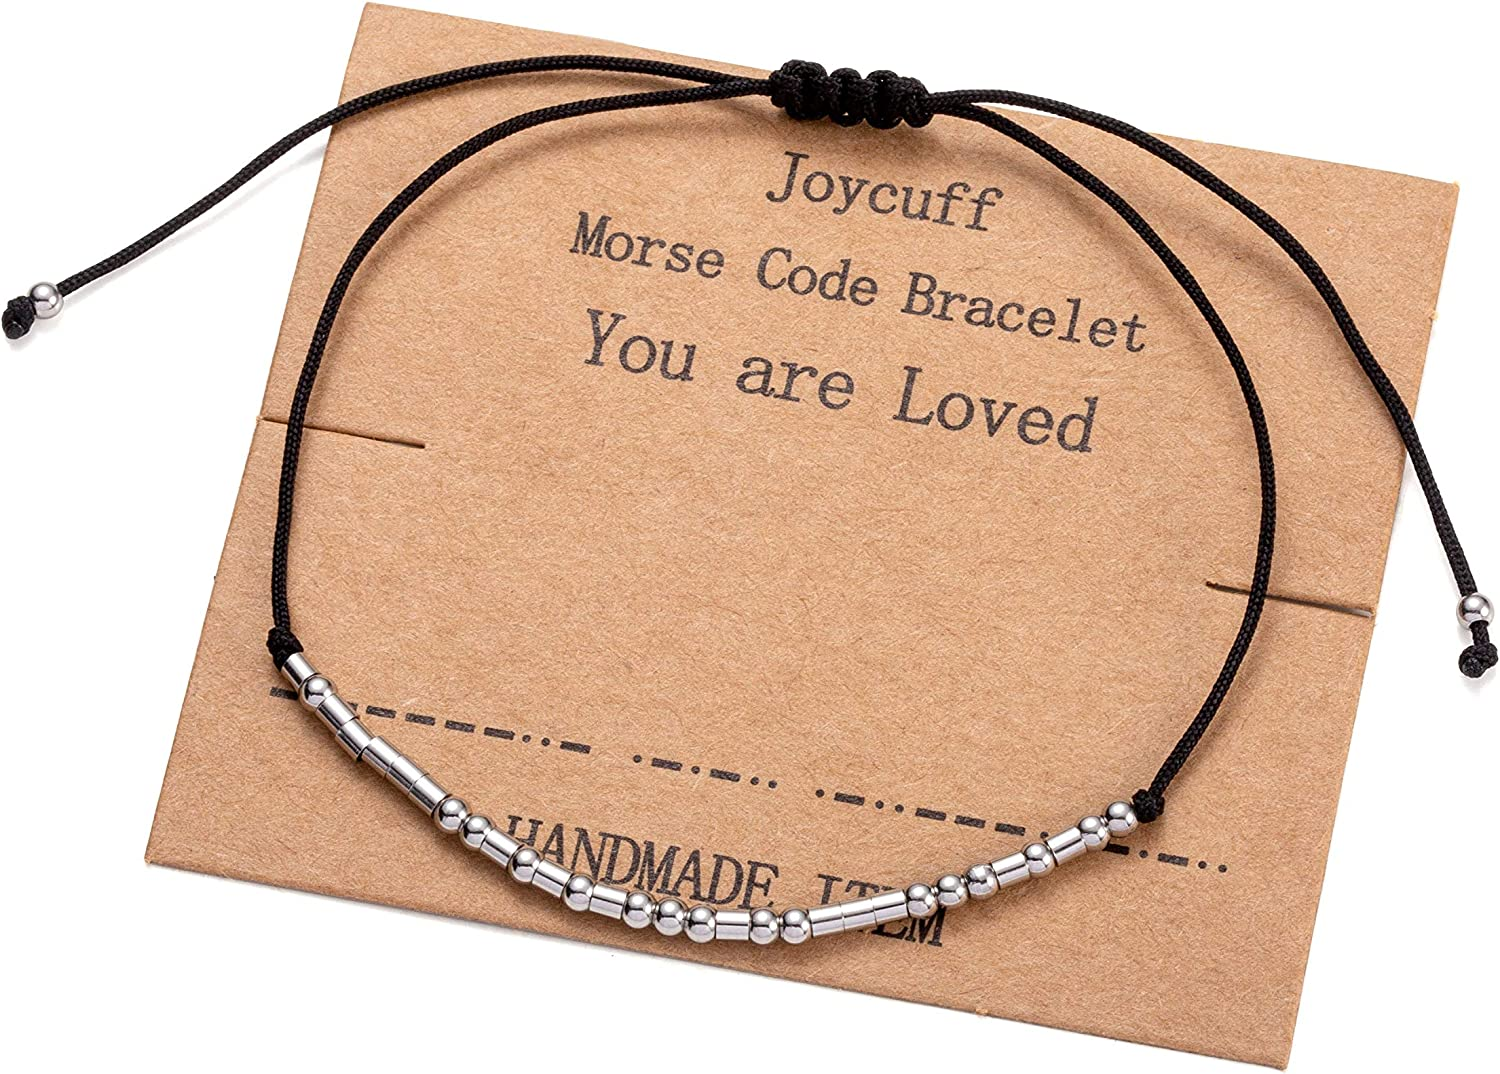 Joycuff Morse Code Bracelets for Women Funny Inspirational Jewelry Birthday Chritmas Gifts for Mother Aunt Daughter Sister Best Friend Adjustable Bead Wrap Bracelet